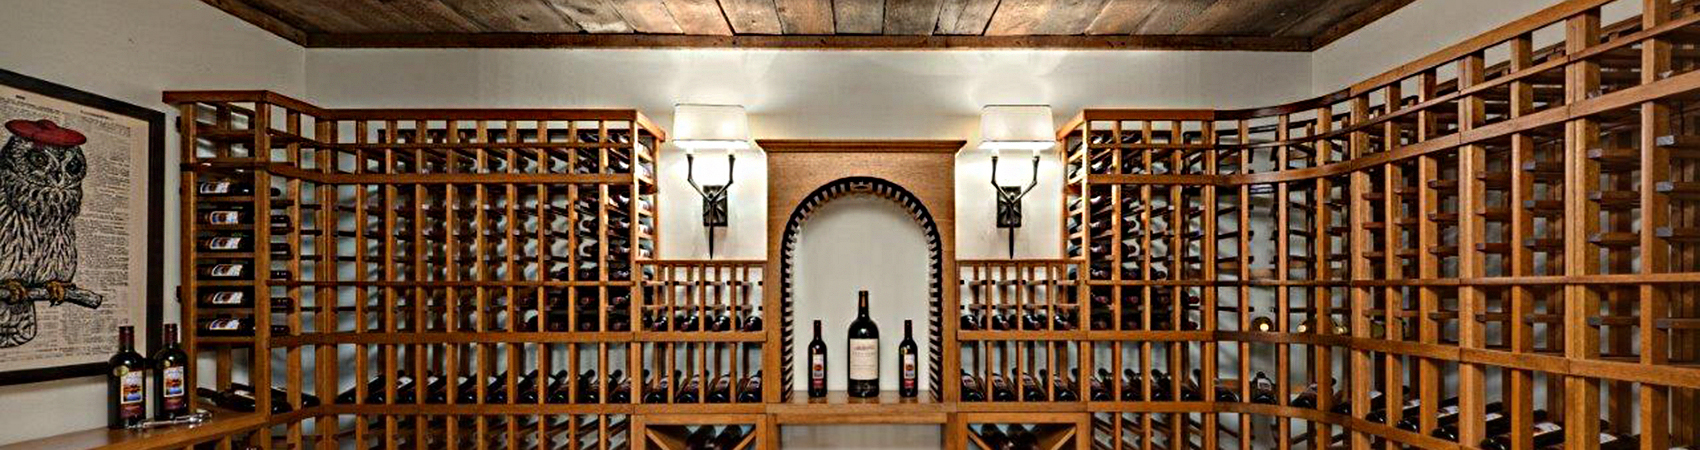 full-wine-room